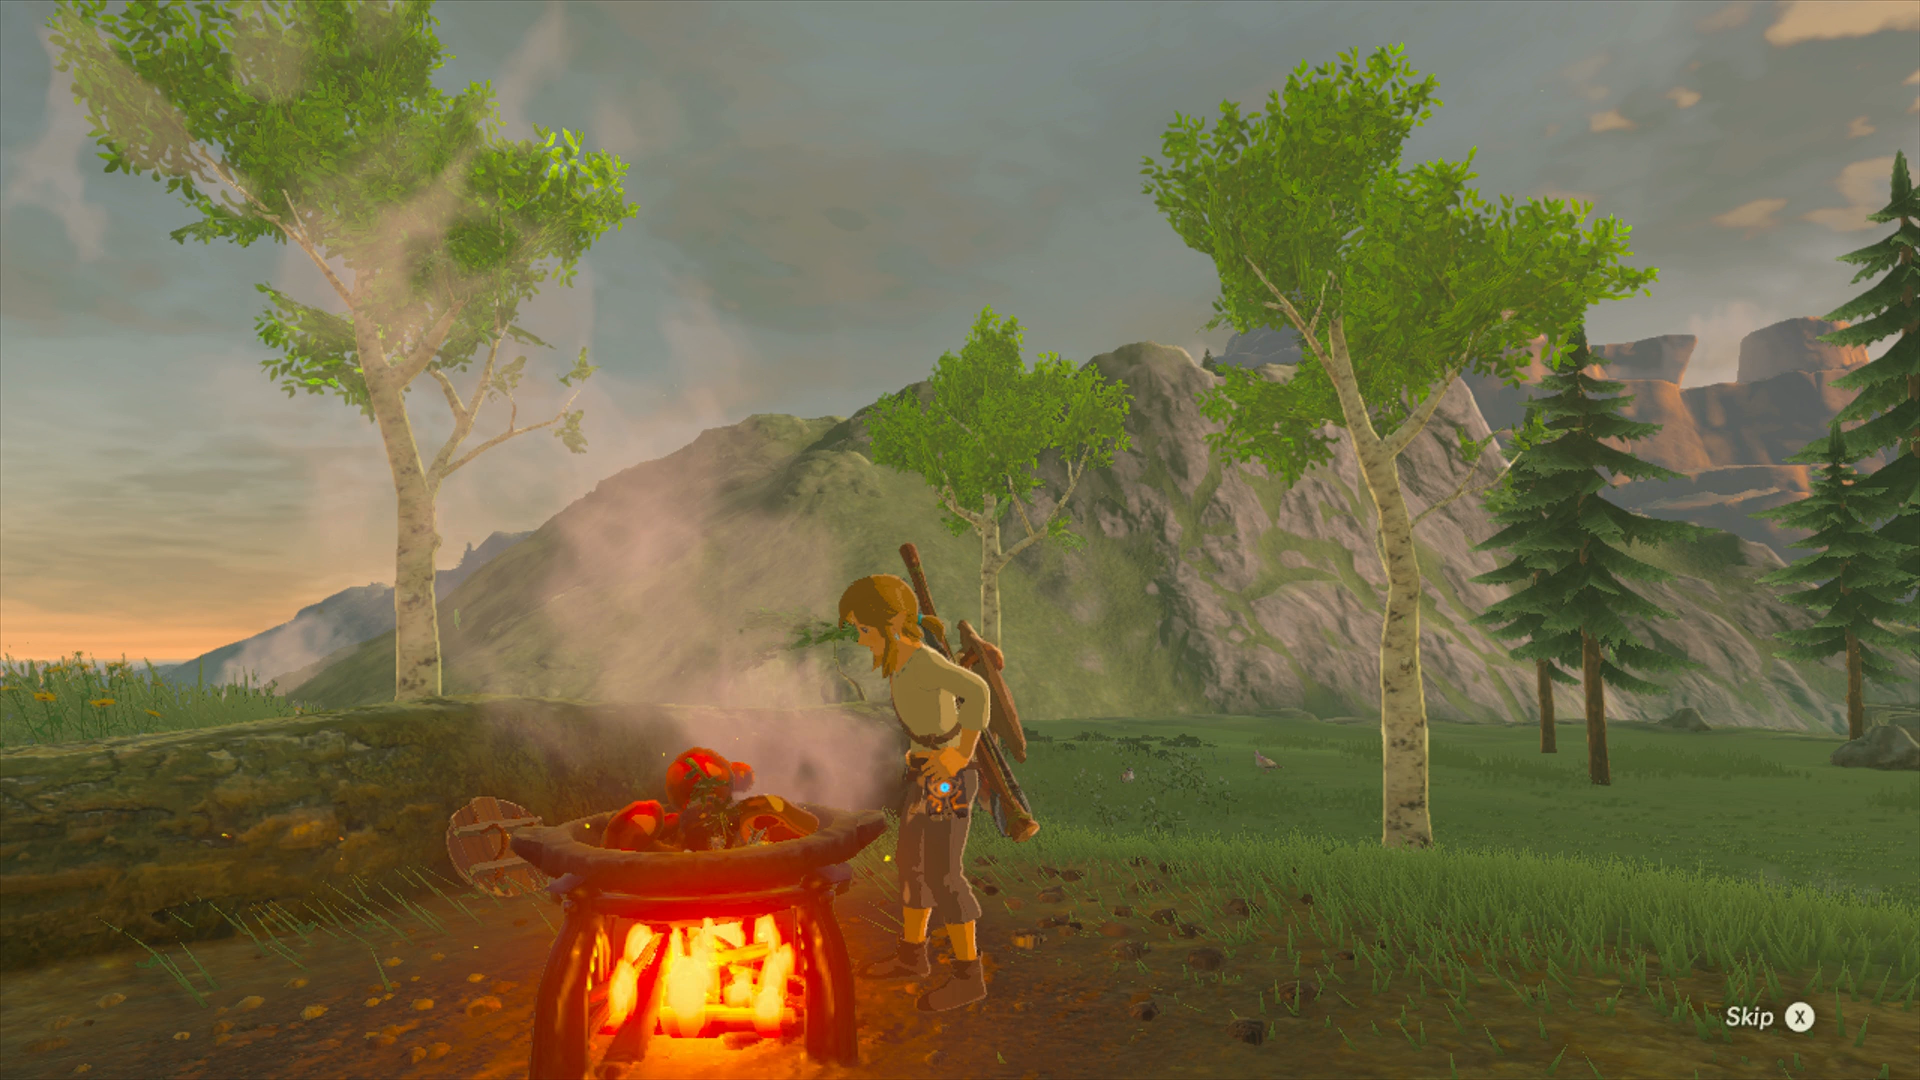 Cooking is essential to Link's survival in the harsh land of Hyrule